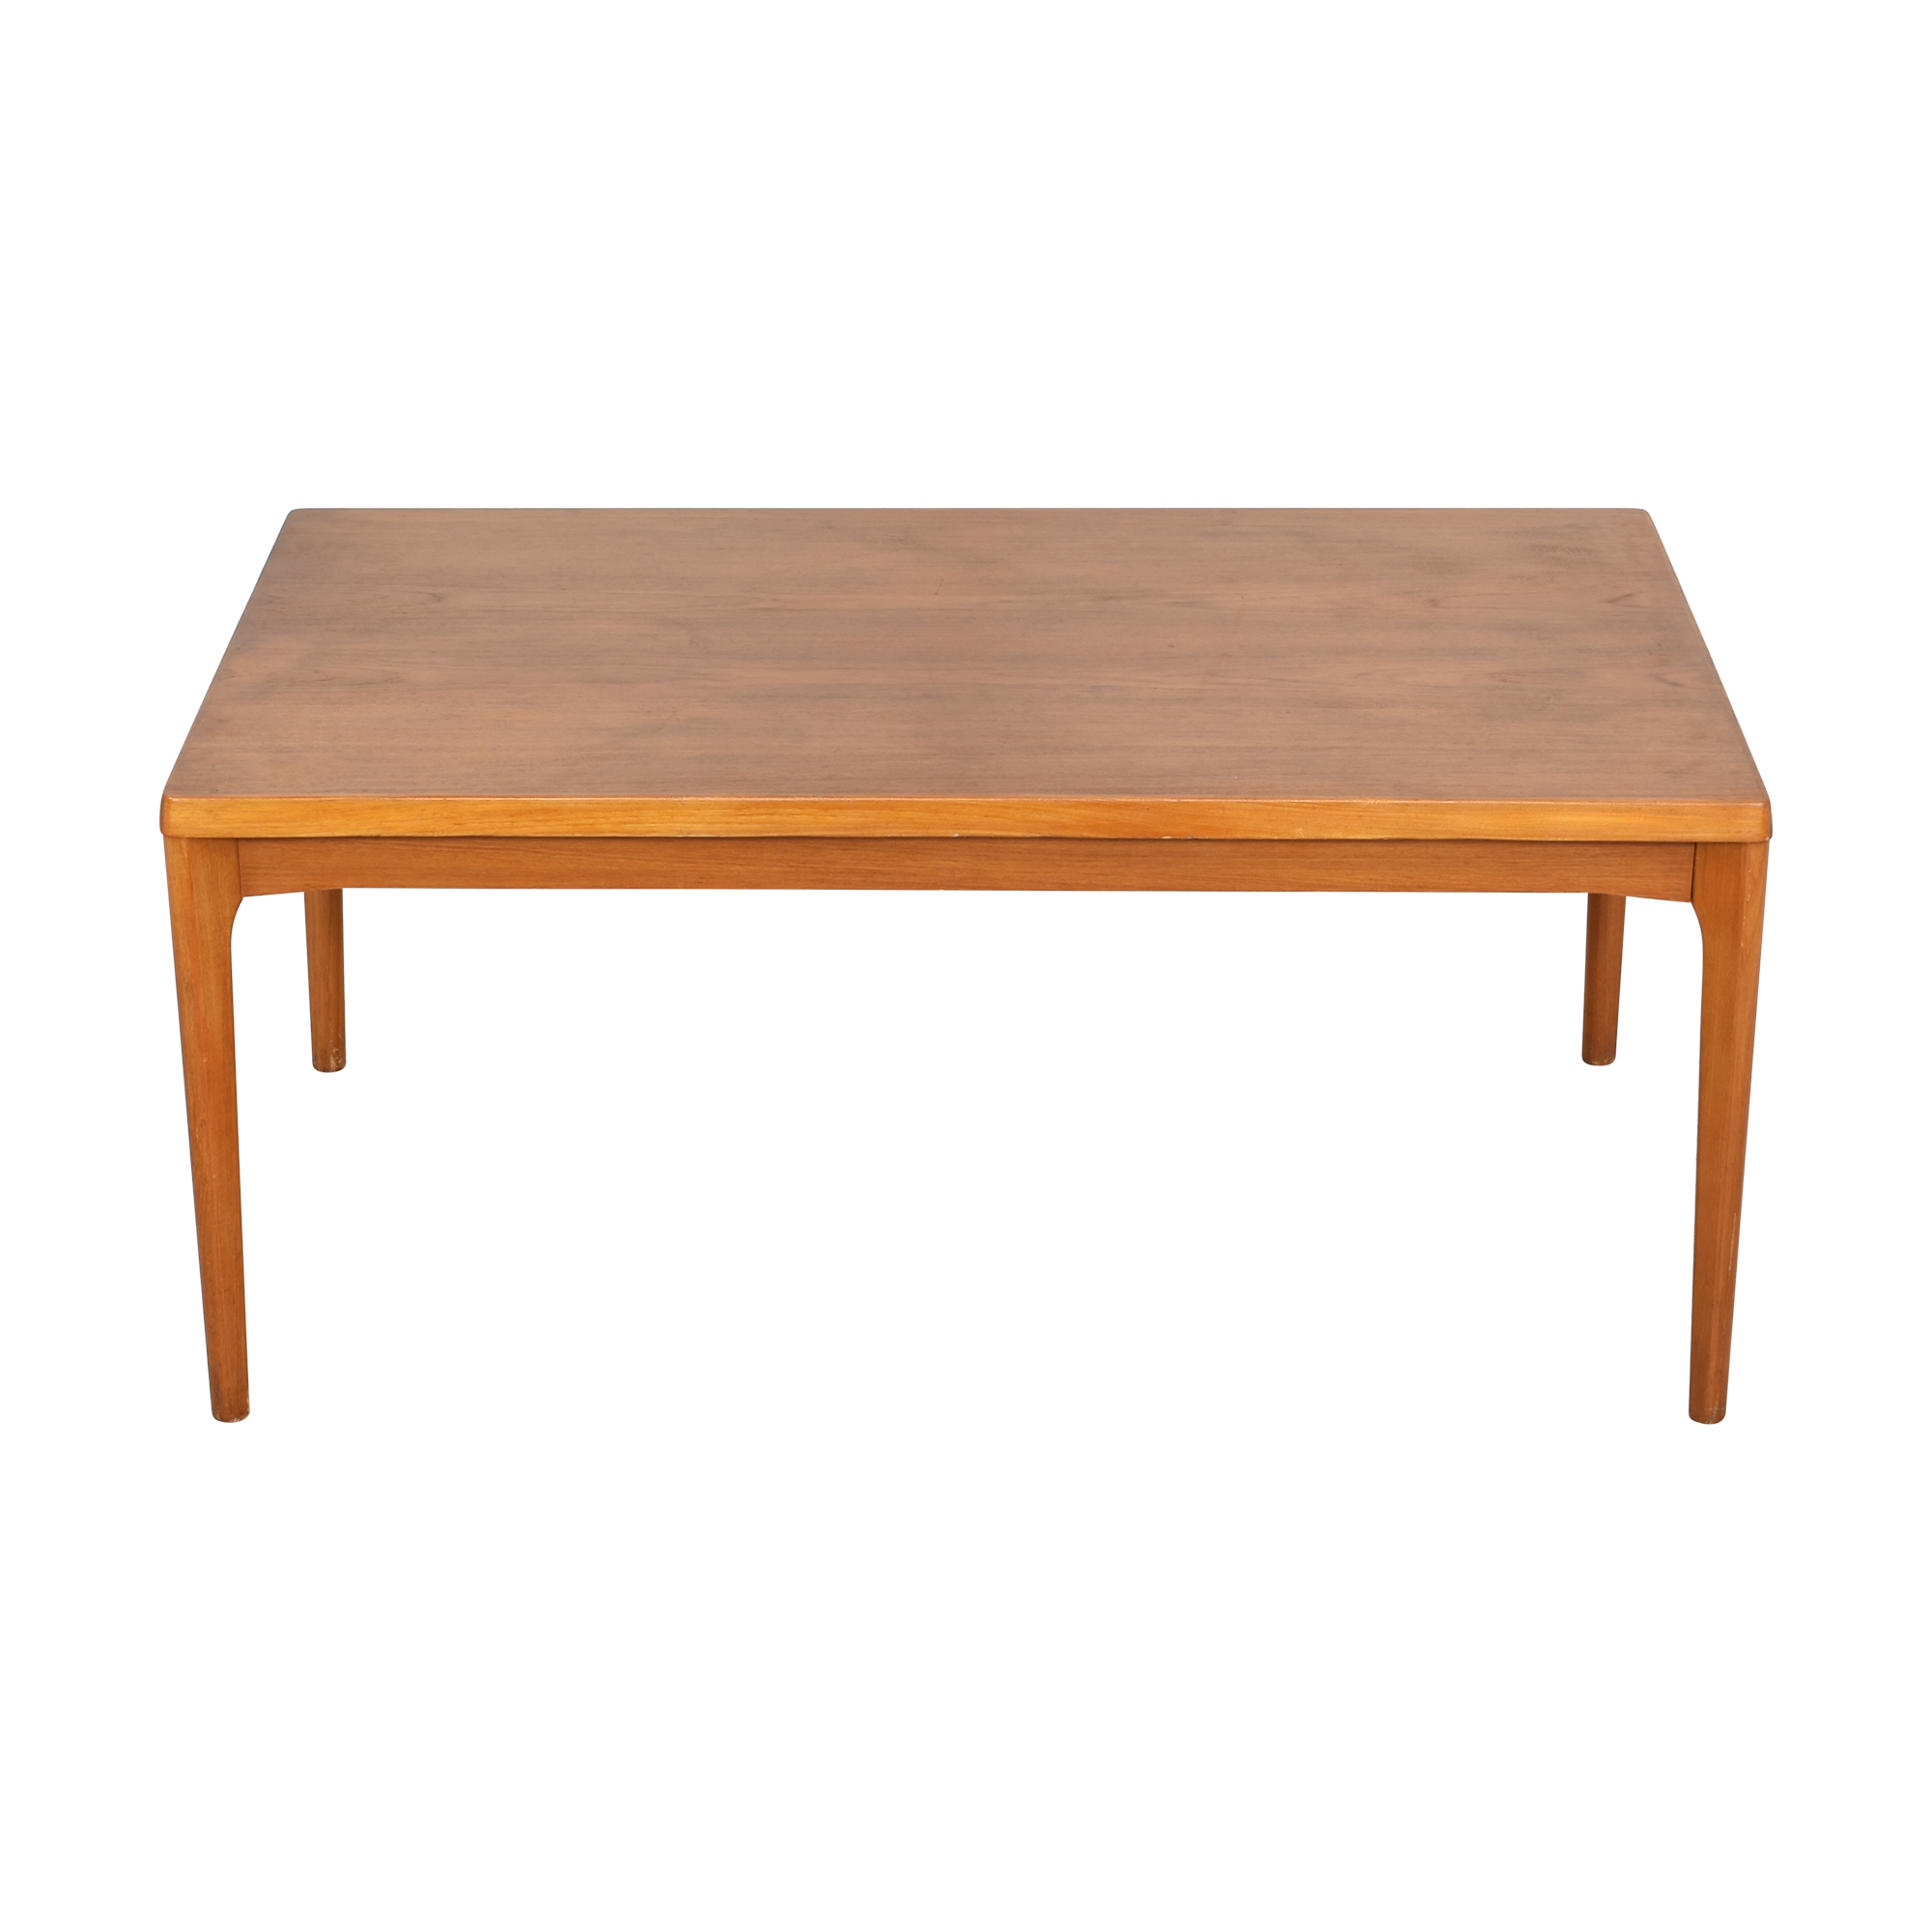 Danish-Style Modern Extending Dining Table Brown